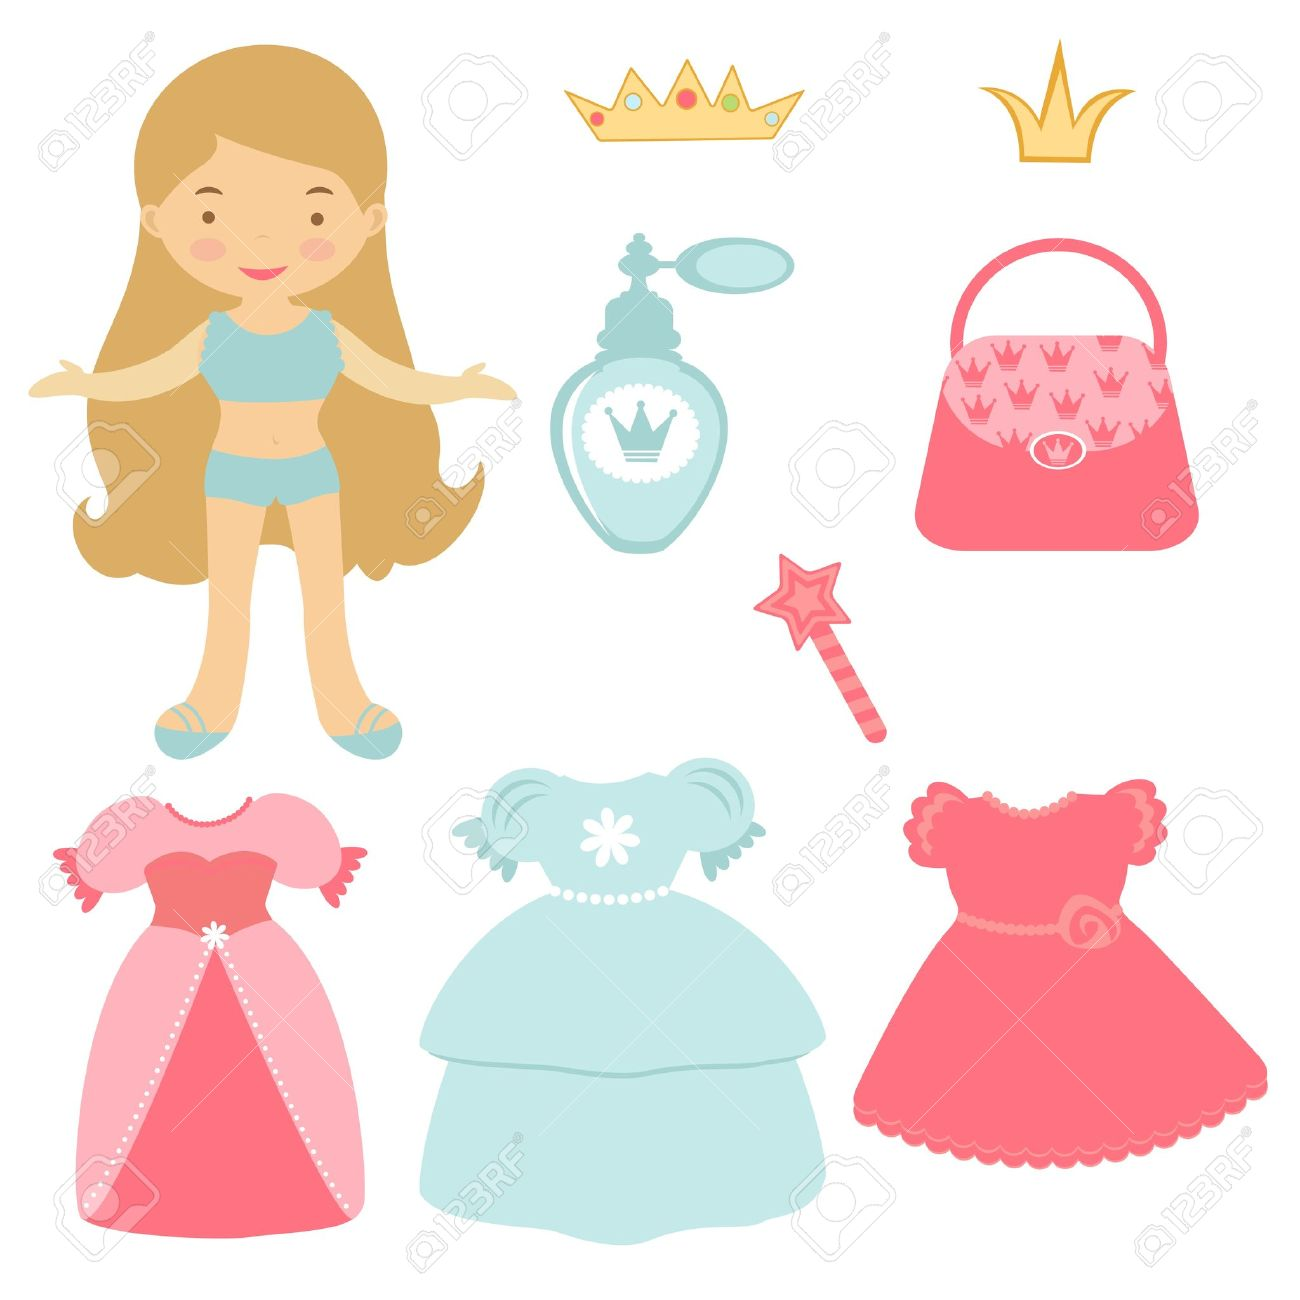 illustration of princess paper doll with various accessories royalty rh 123rf com paper doll clipart free paper doll clip art images